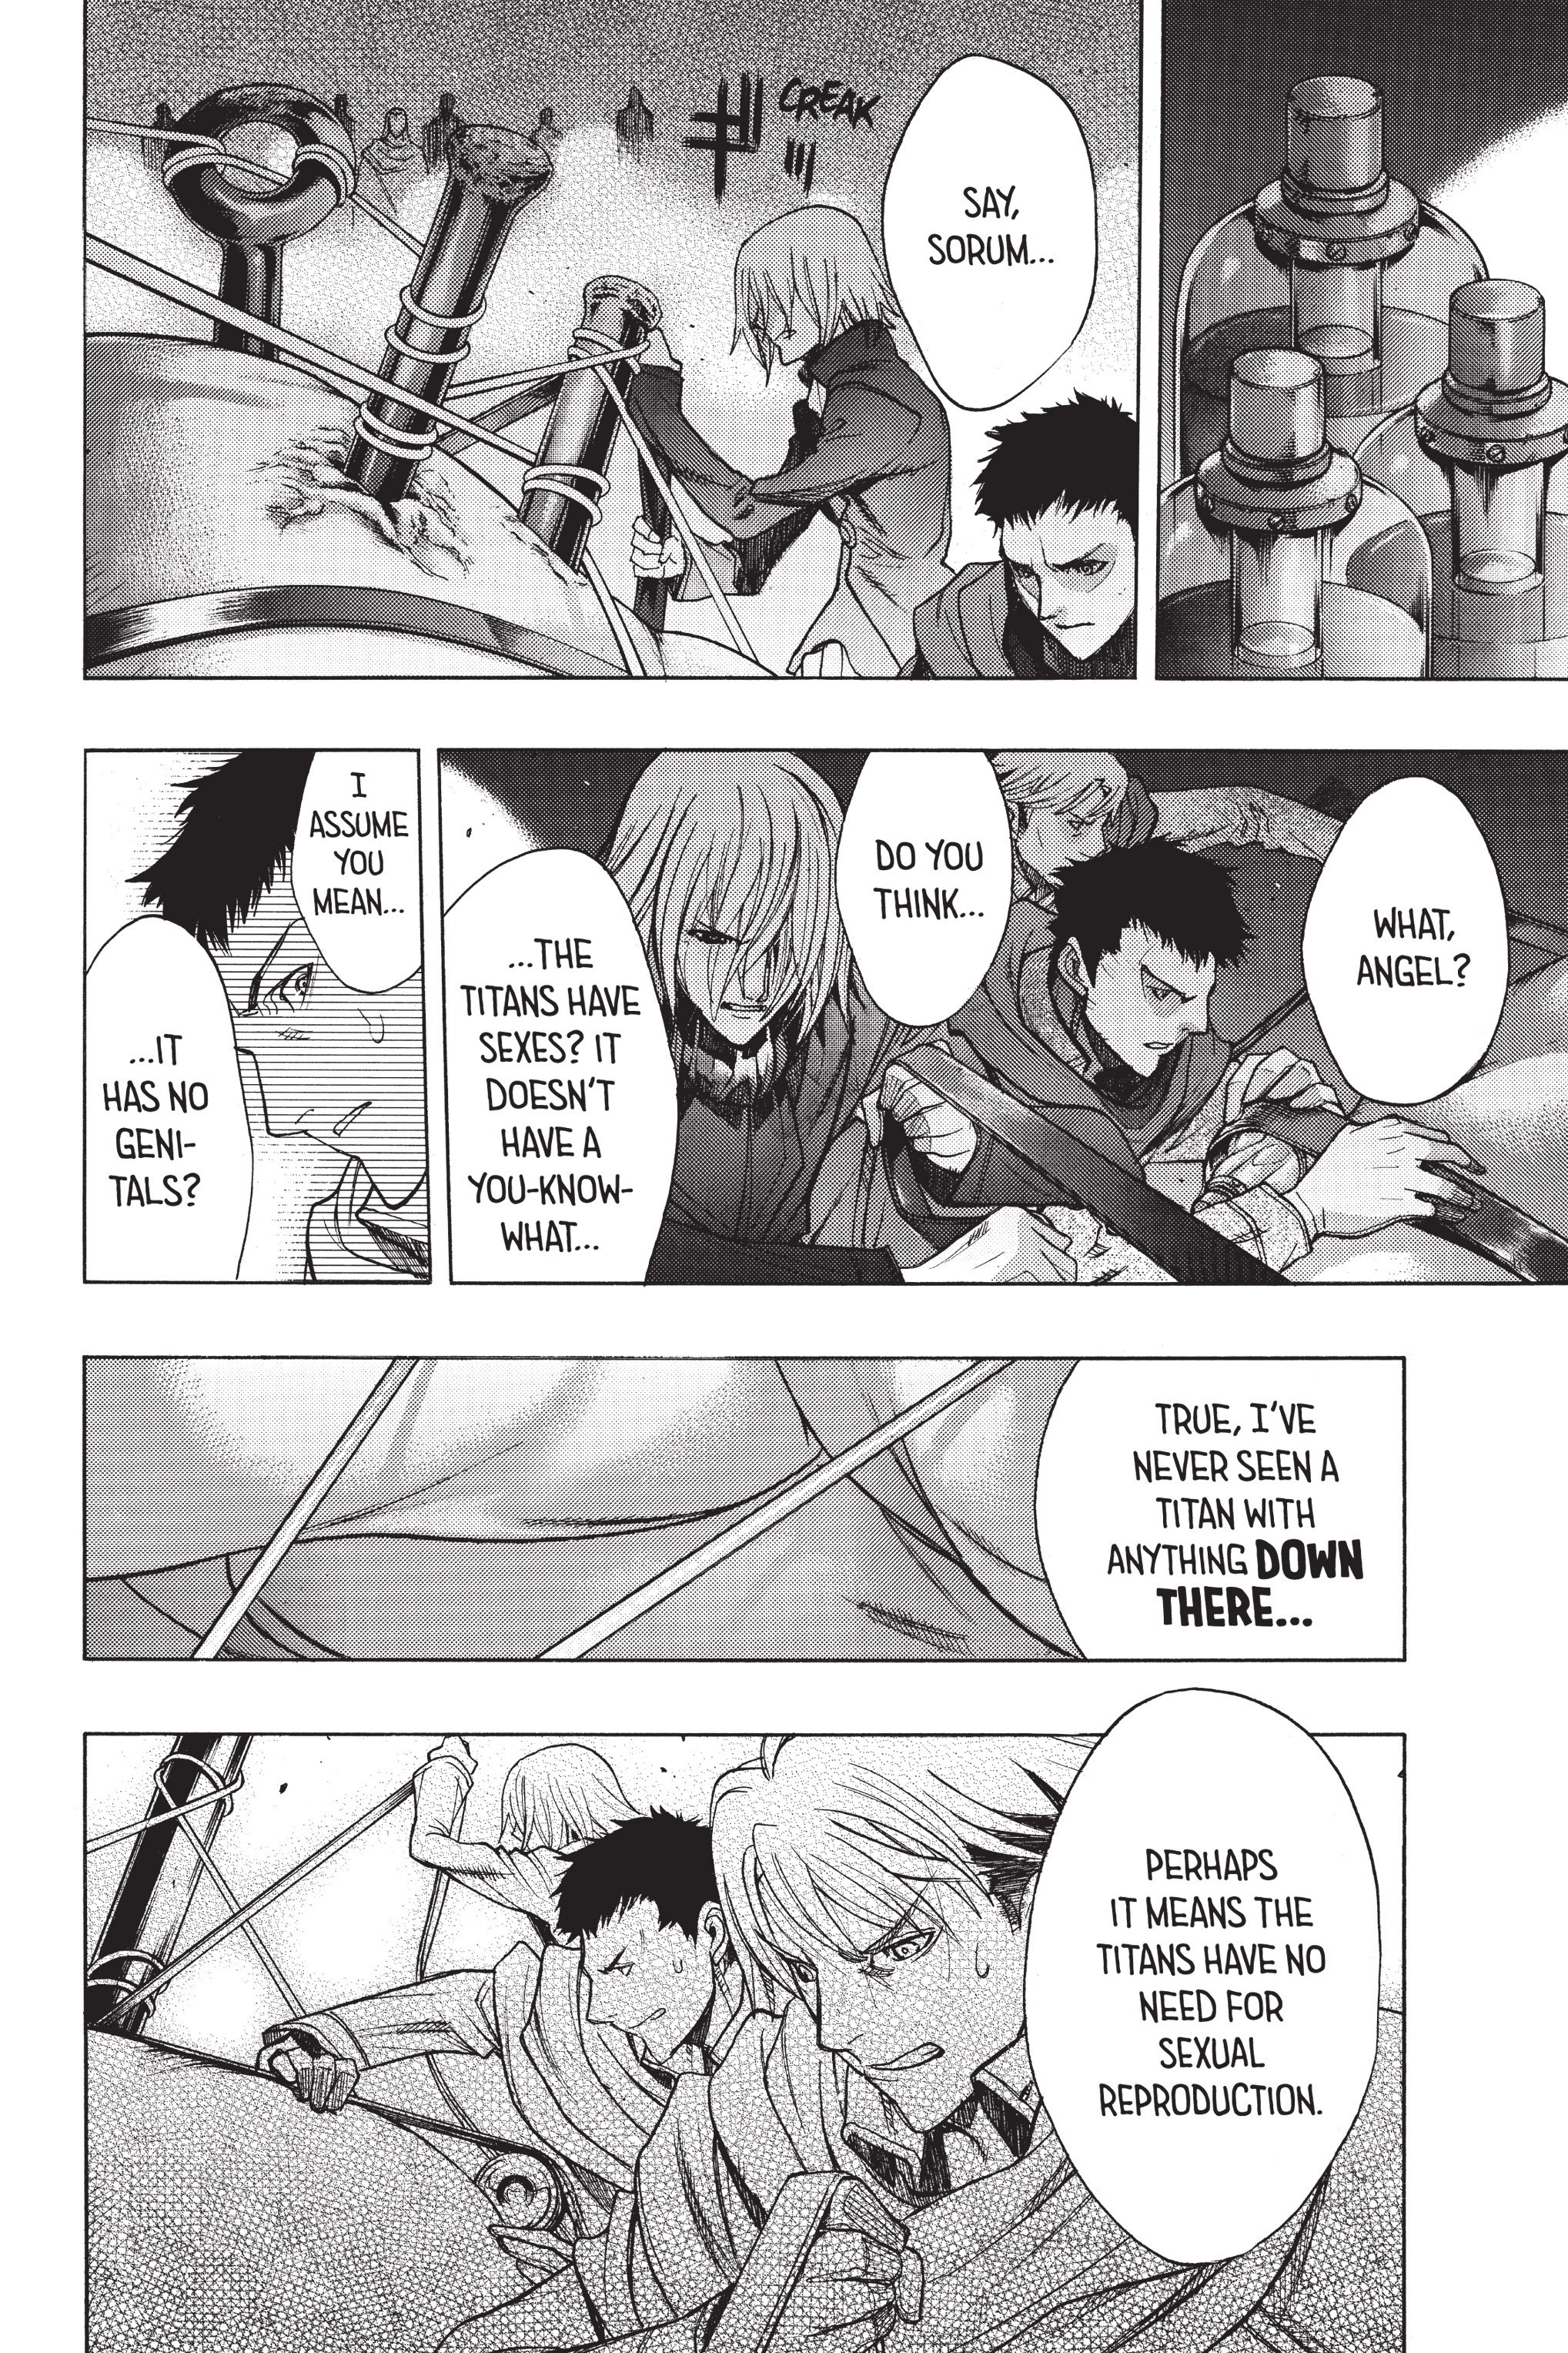 Read online Attack on Titan: Before the Fall comic -  Issue #5 - 180